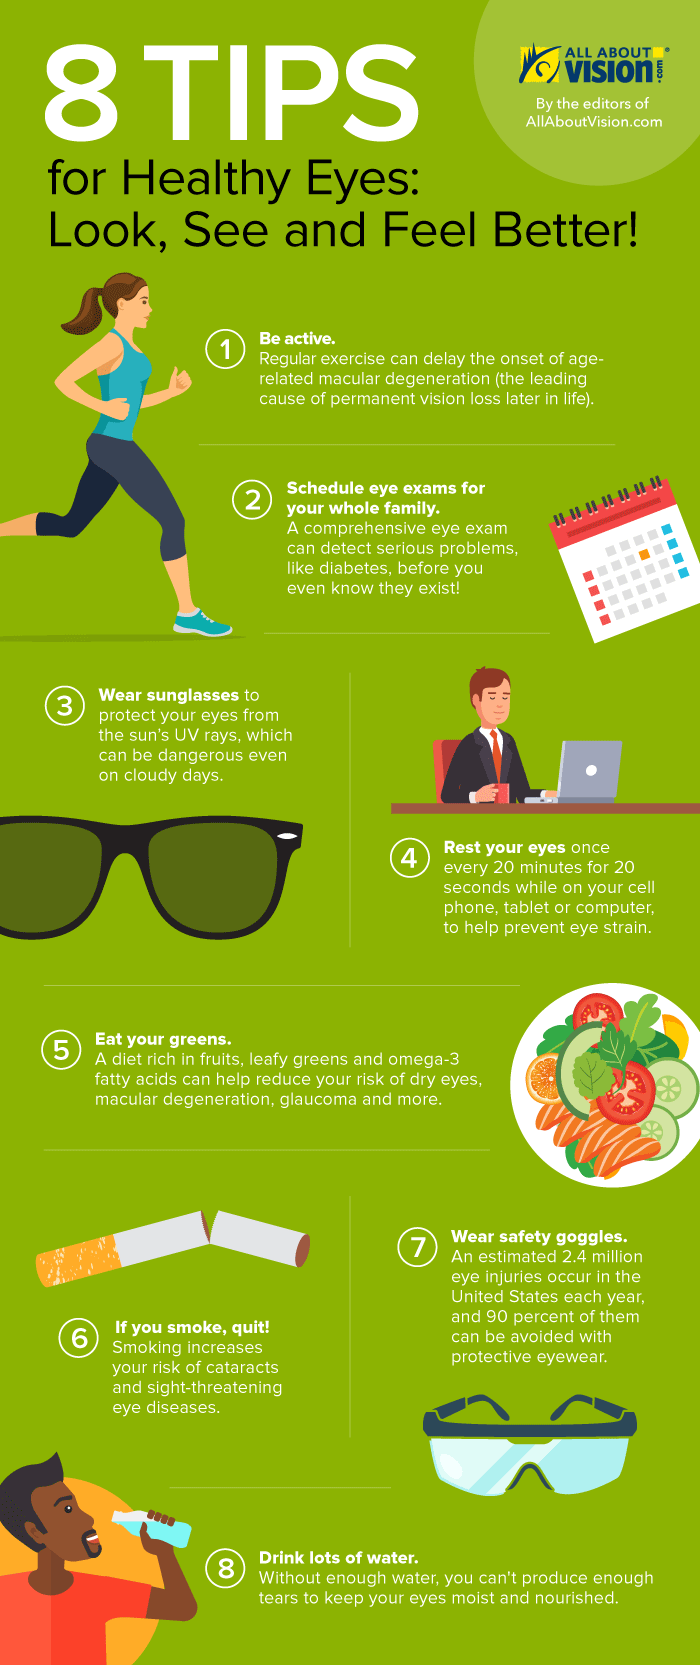 How to Ensure Healthy Eves and Vision: 8 Simple and Practical Tips - Infographic